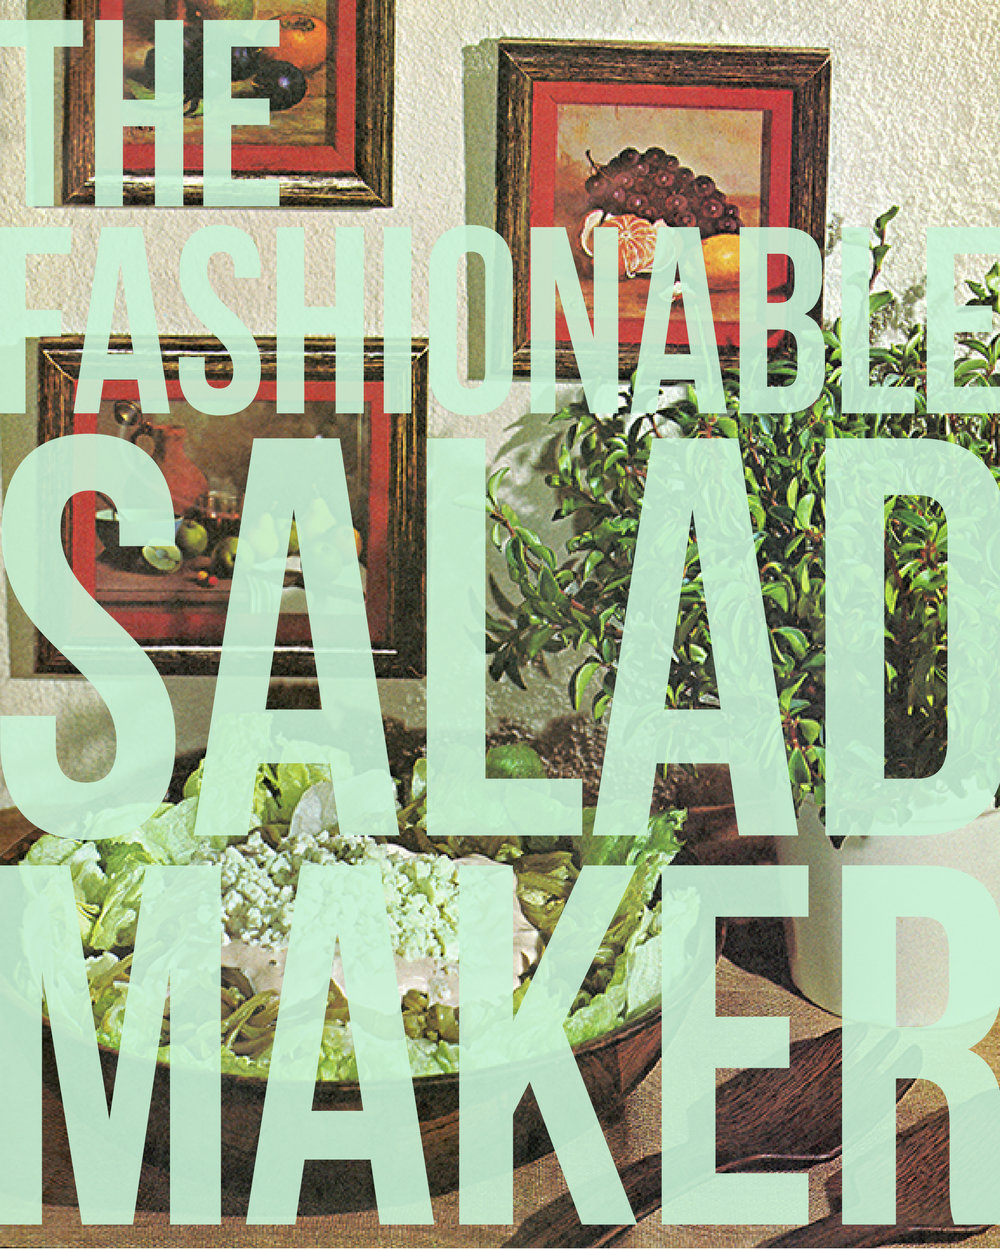 Fashionable Salad-Maker Kit (for Chevalier d'Albignac)  2015 Promotional Poster